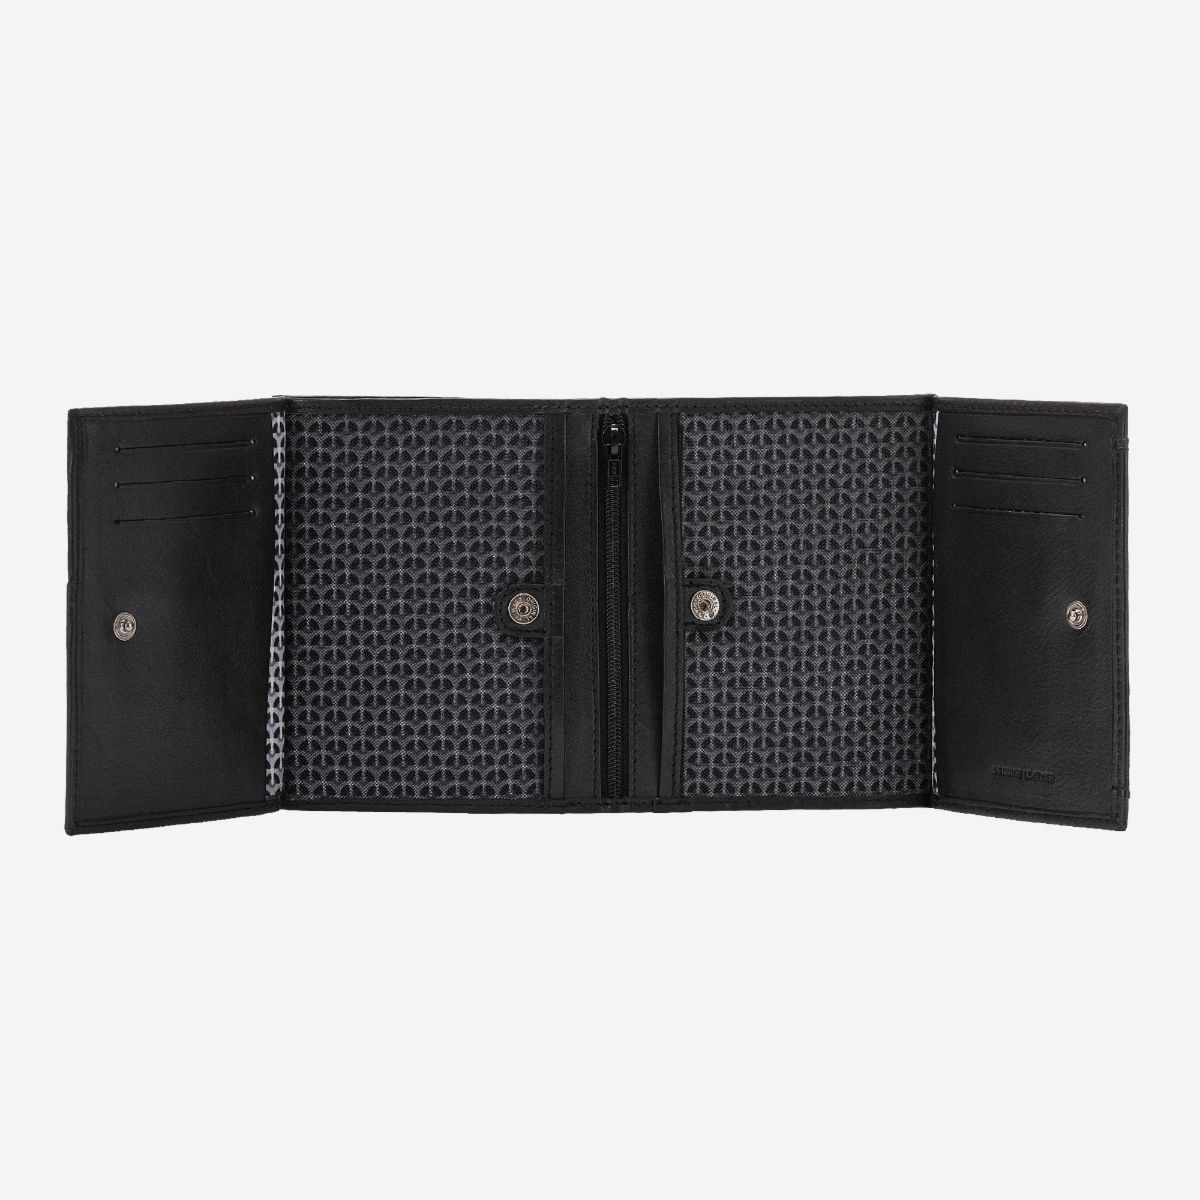 NUVOLA PELLE Vertical small leather wallet with coin pocket - Black